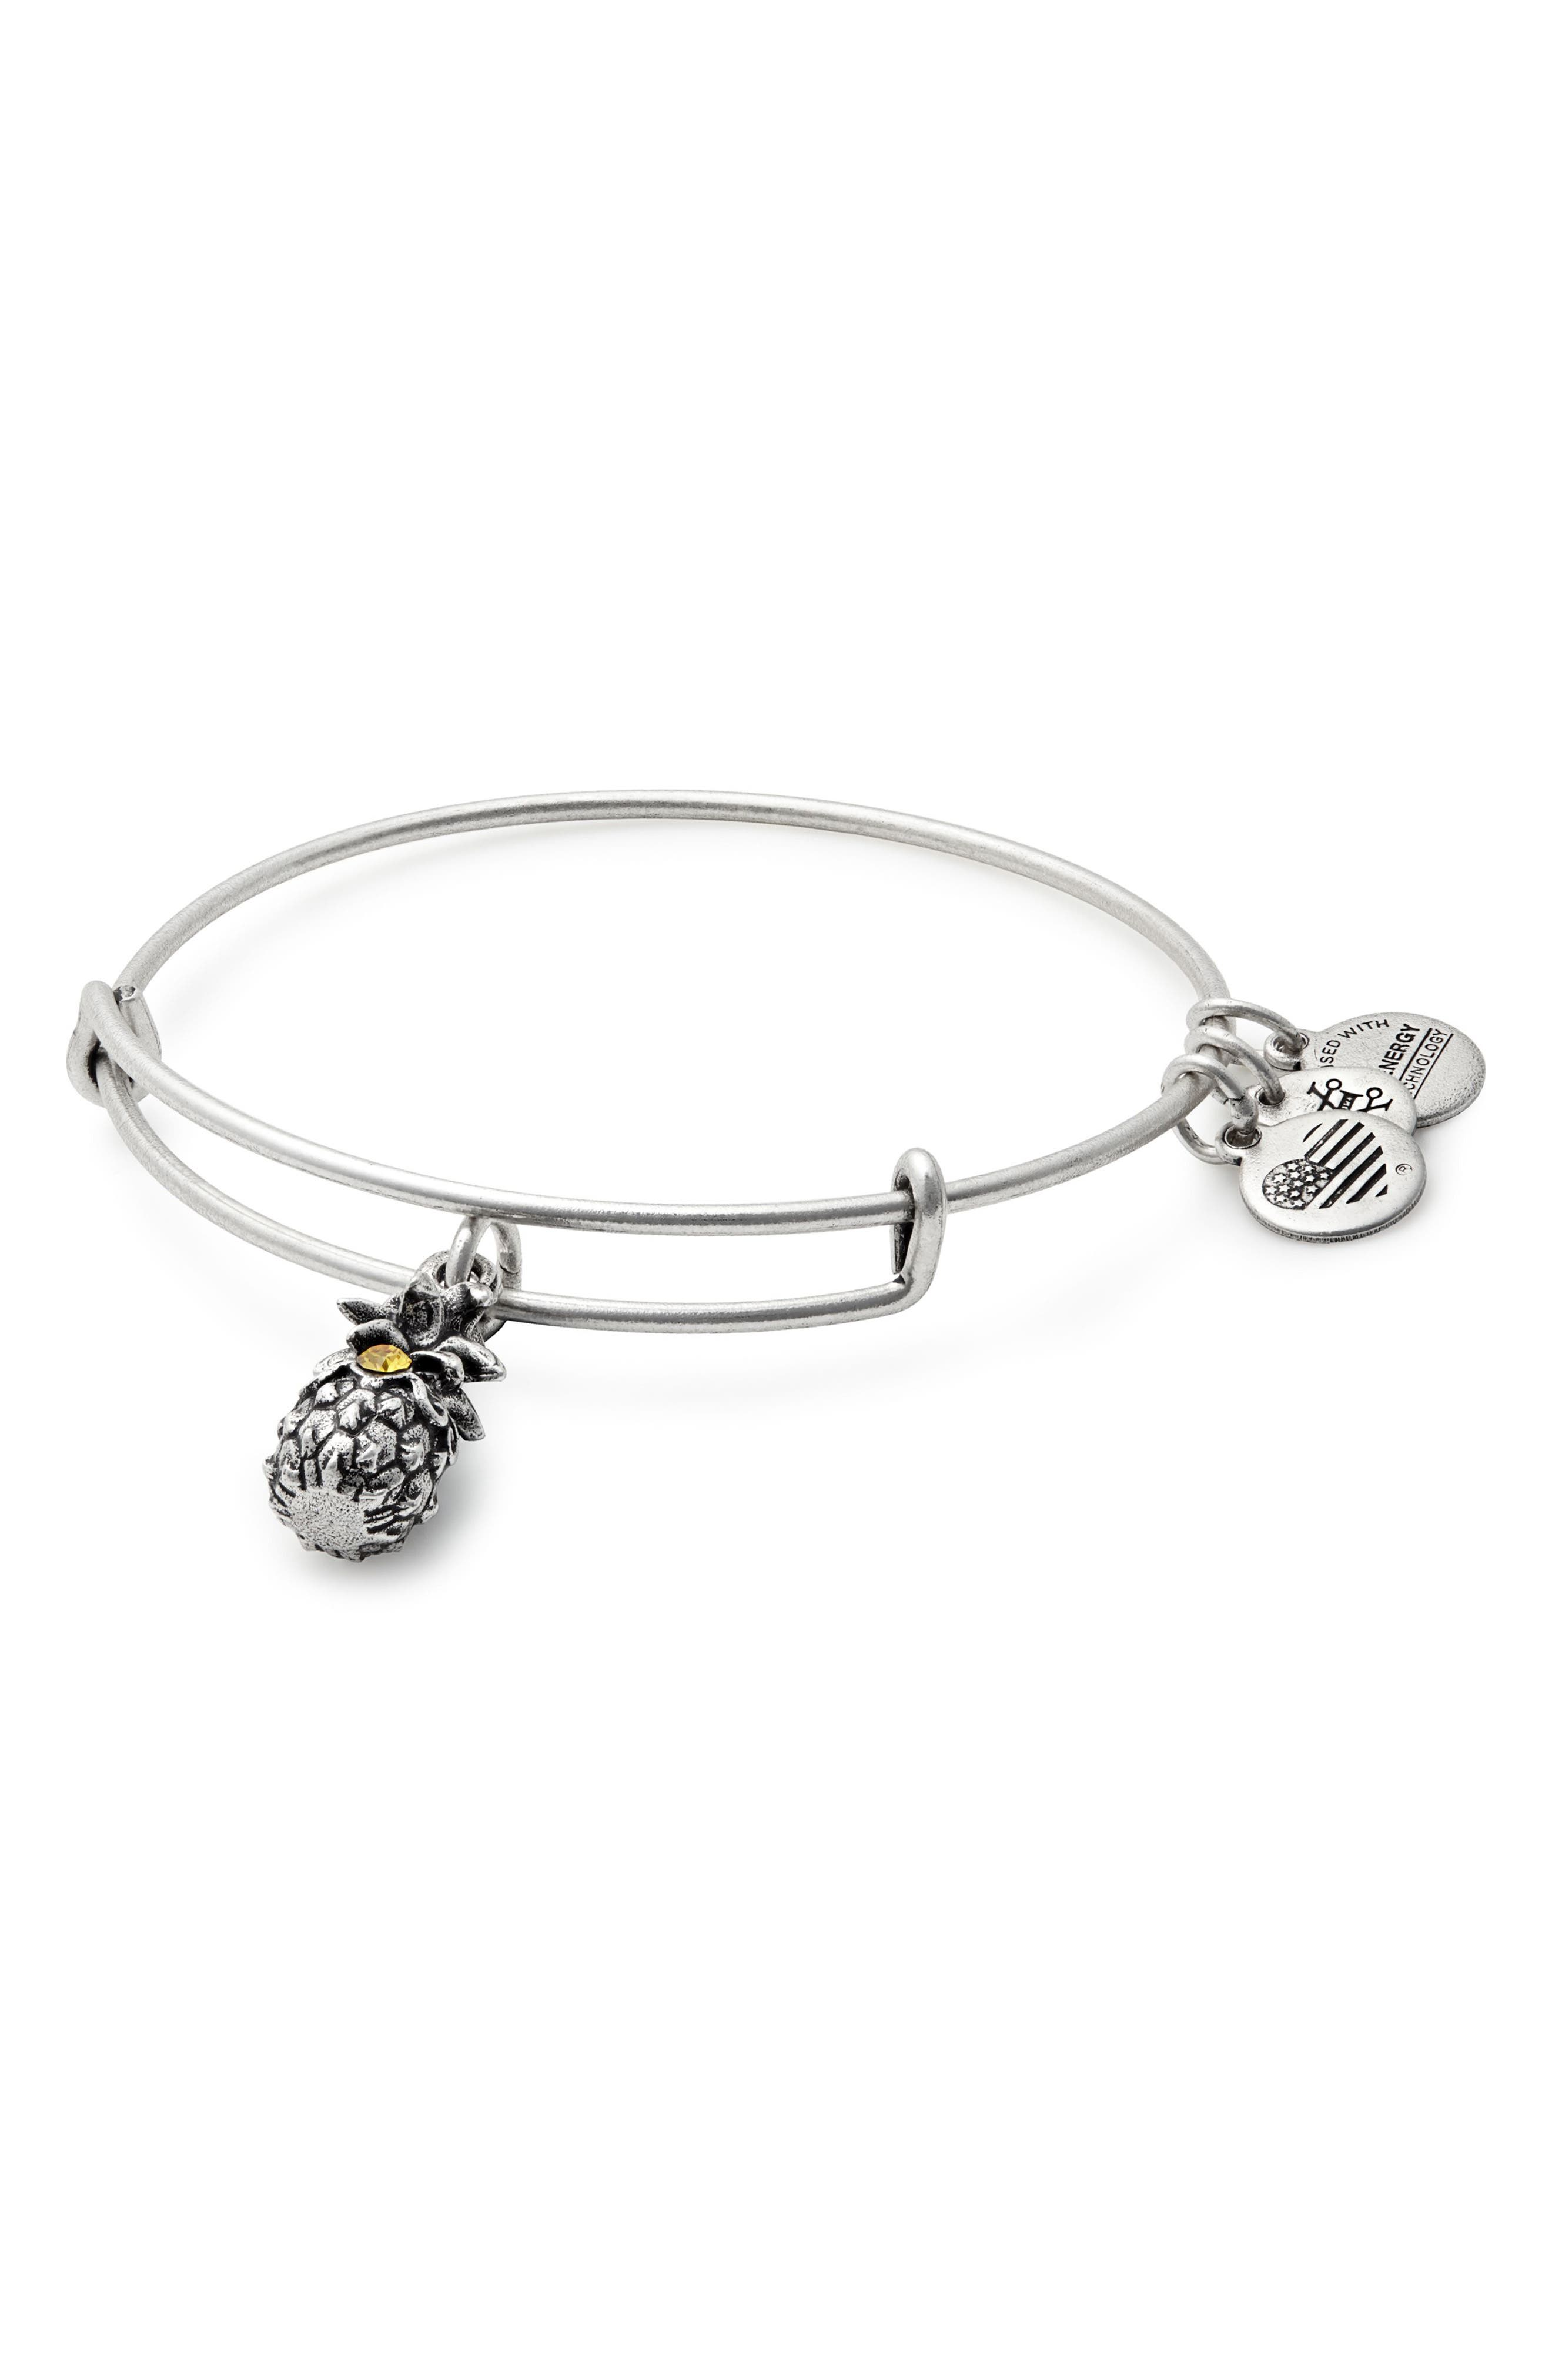 Pineapple Adjustable Wire Bangle,                             Main thumbnail 1, color,                             RUSSIAN SILVER